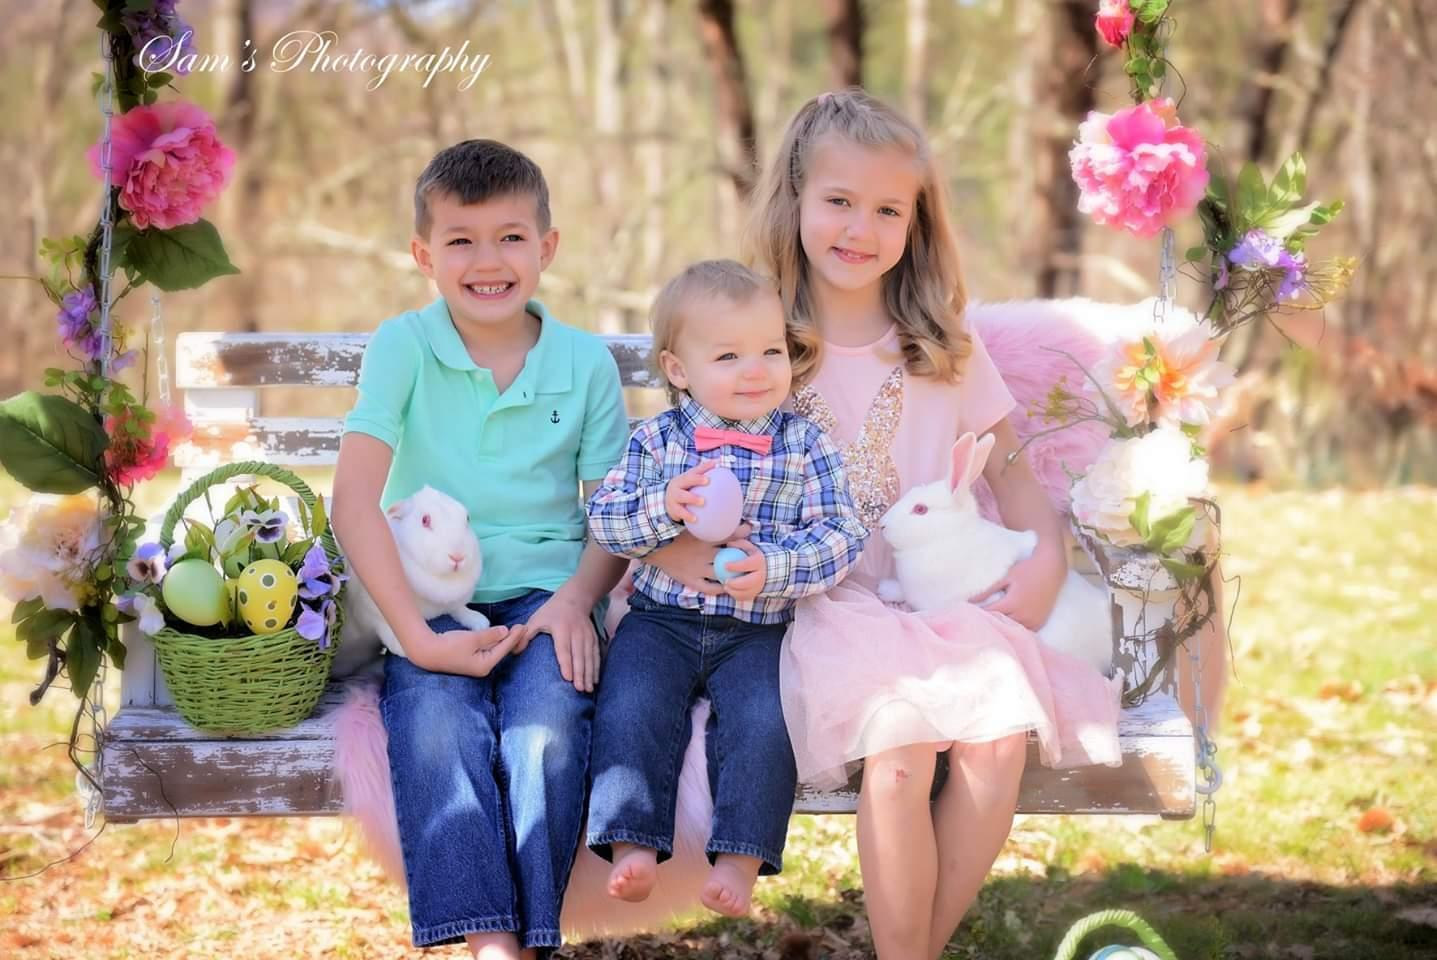 My beautiful children: Will, Carter, & Lolly Anne